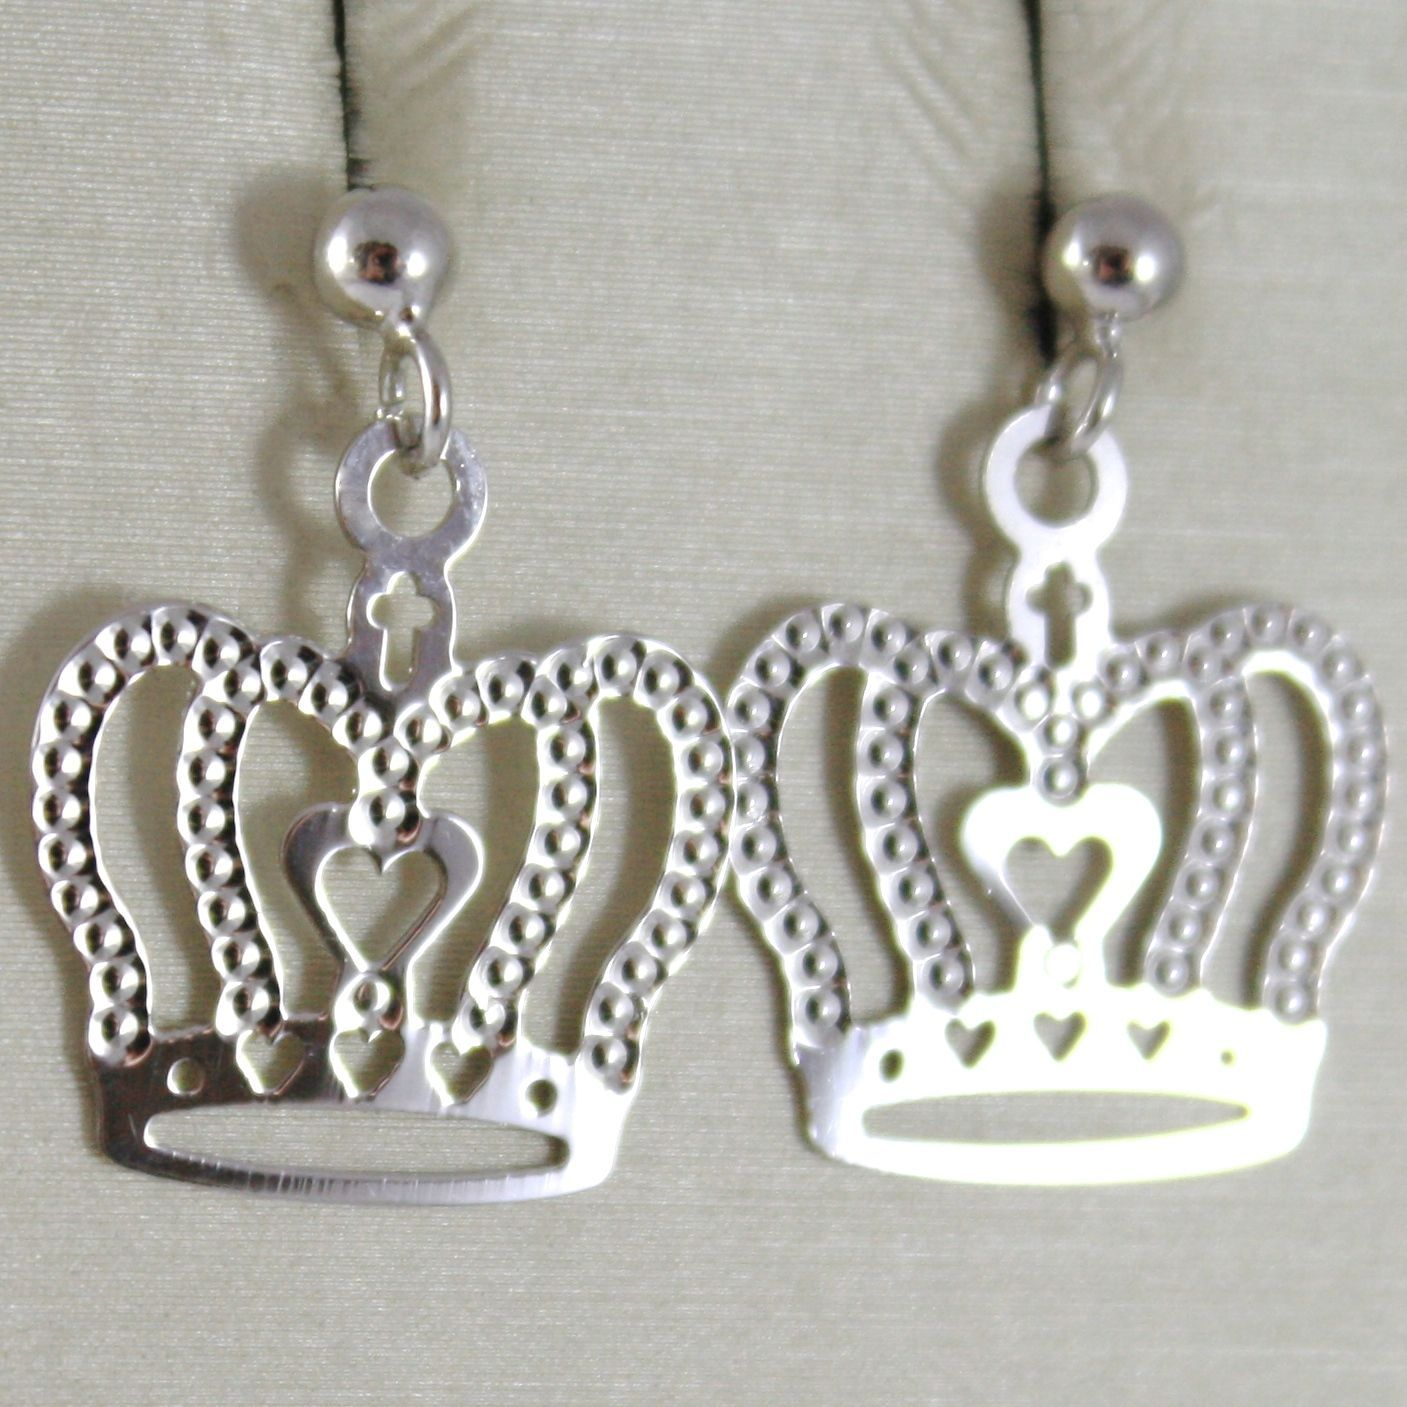 18K WHITE GOLD PENDANT CROWN EARRINGS, LENGTH 0.8 INCHES, MADE IN ITALY